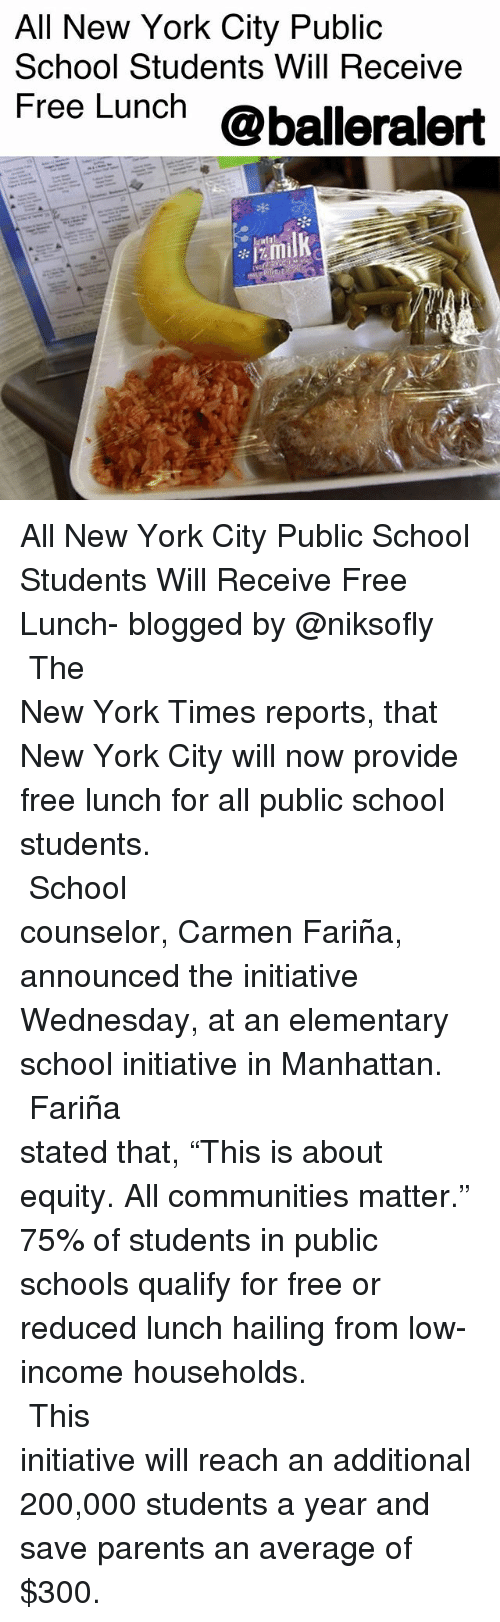 "Publicated: All New York City Public  School Students Will Receive  Free Lunch @balleralert All New York City Public School Students Will Receive Free Lunch- blogged by @niksofly ⠀⠀⠀⠀⠀⠀⠀⠀⠀⠀⠀⠀⠀⠀⠀⠀⠀⠀⠀⠀⠀⠀⠀⠀⠀⠀⠀⠀⠀⠀⠀⠀⠀⠀⠀⠀ The New York Times reports, that New York City will now provide free lunch for all public school students. ⠀⠀⠀⠀⠀⠀⠀⠀⠀⠀⠀⠀⠀⠀⠀⠀⠀⠀⠀⠀⠀⠀⠀⠀⠀⠀⠀⠀⠀⠀⠀⠀⠀⠀⠀⠀ School counselor, Carmen Fariña, announced the initiative Wednesday, at an elementary school initiative in Manhattan. ⠀⠀⠀⠀⠀⠀⠀⠀⠀⠀⠀⠀⠀⠀⠀⠀⠀⠀⠀⠀⠀⠀⠀⠀⠀⠀⠀⠀⠀⠀⠀⠀⠀⠀⠀⠀ Fariña stated that, ""This is about equity. All communities matter."" 75% of students in public schools qualify for free or reduced lunch hailing from low-income households. ⠀⠀⠀⠀⠀⠀⠀⠀⠀⠀⠀⠀⠀⠀⠀⠀⠀⠀⠀⠀⠀⠀⠀⠀⠀⠀⠀⠀⠀⠀⠀⠀⠀⠀⠀⠀ This initiative will reach an additional 200,000 students a year and save parents an average of $300."